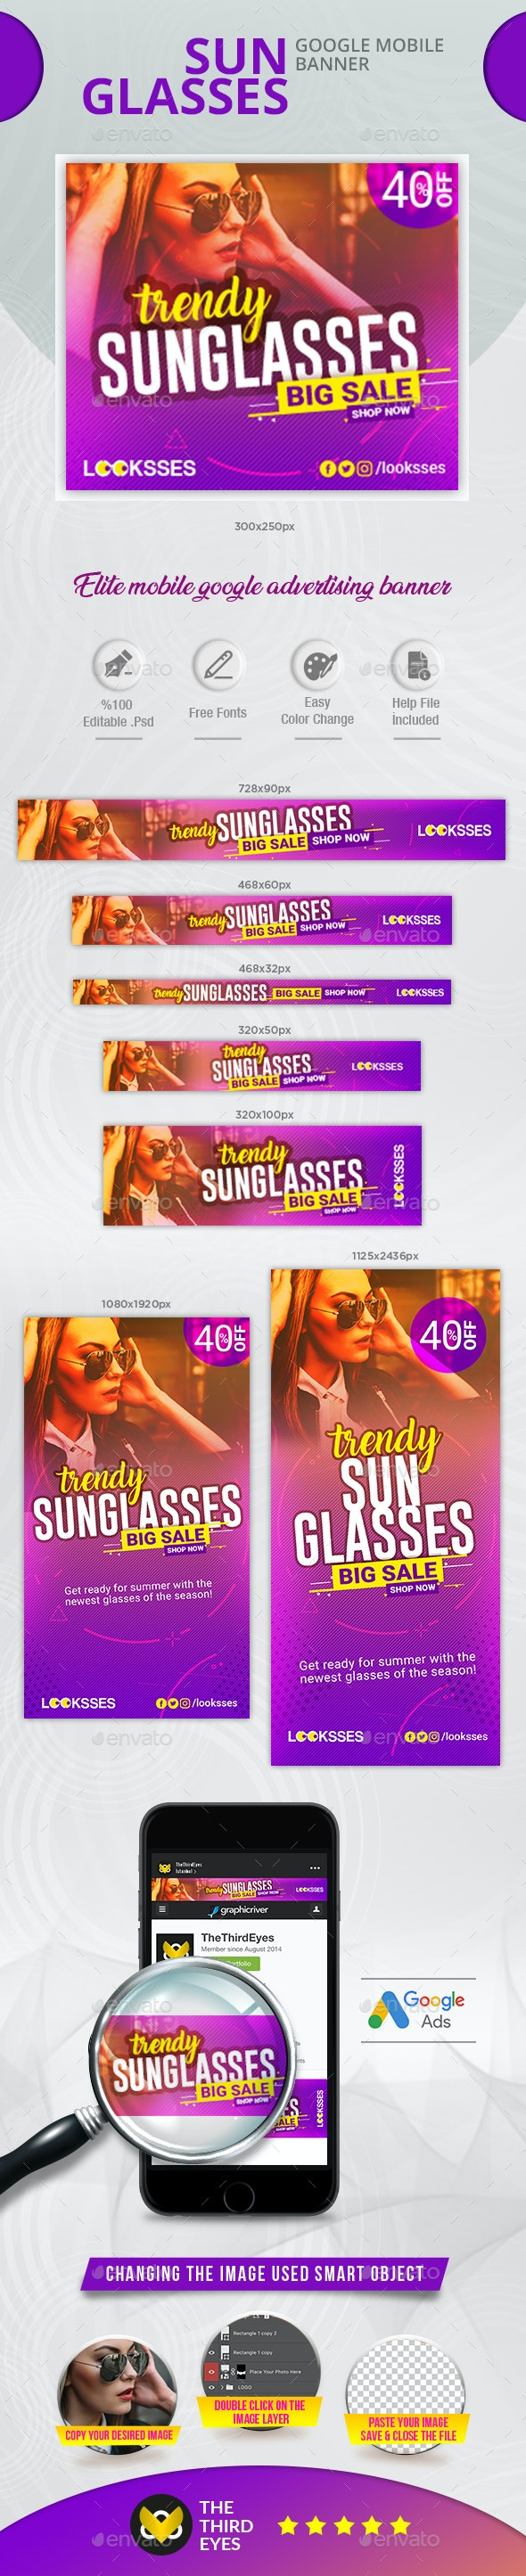 Sunglasses Mobile Banner - Banners & Ads Web Elements